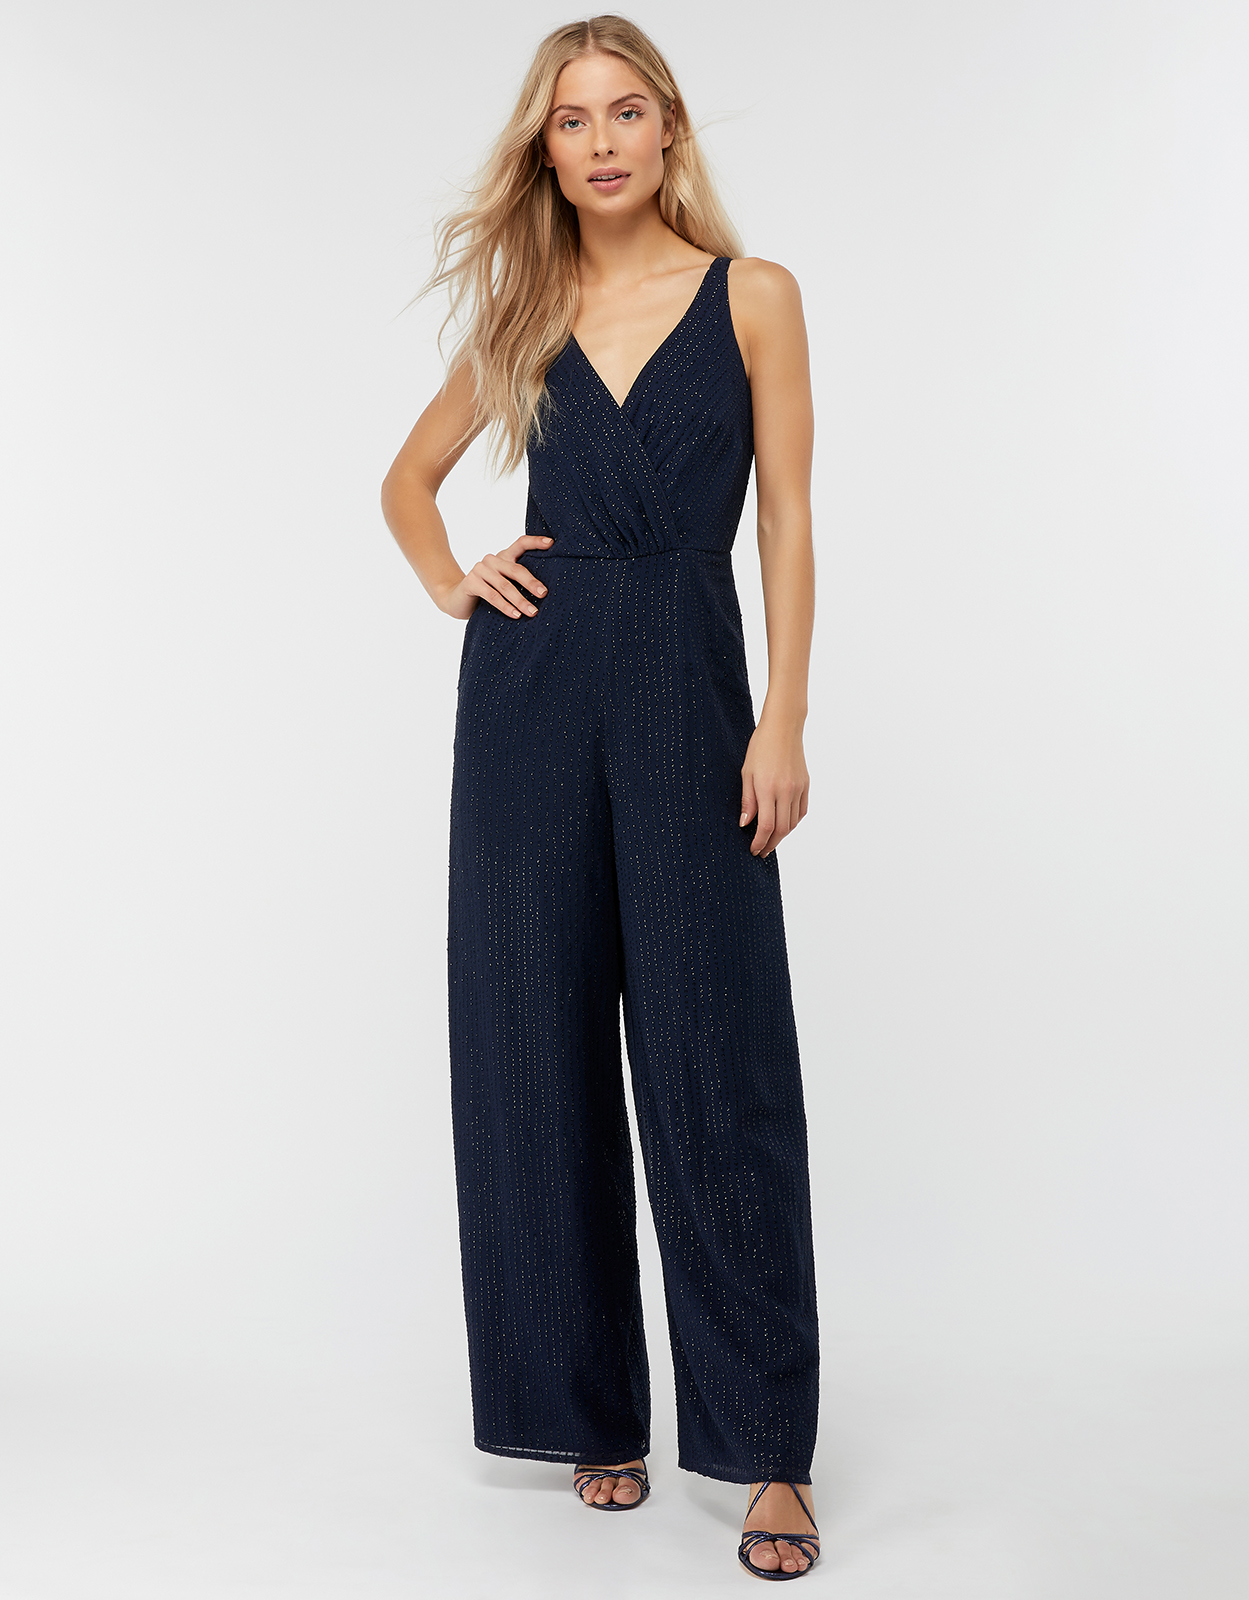 Monsoon Frederique Embellished Sequin Jumpsuit